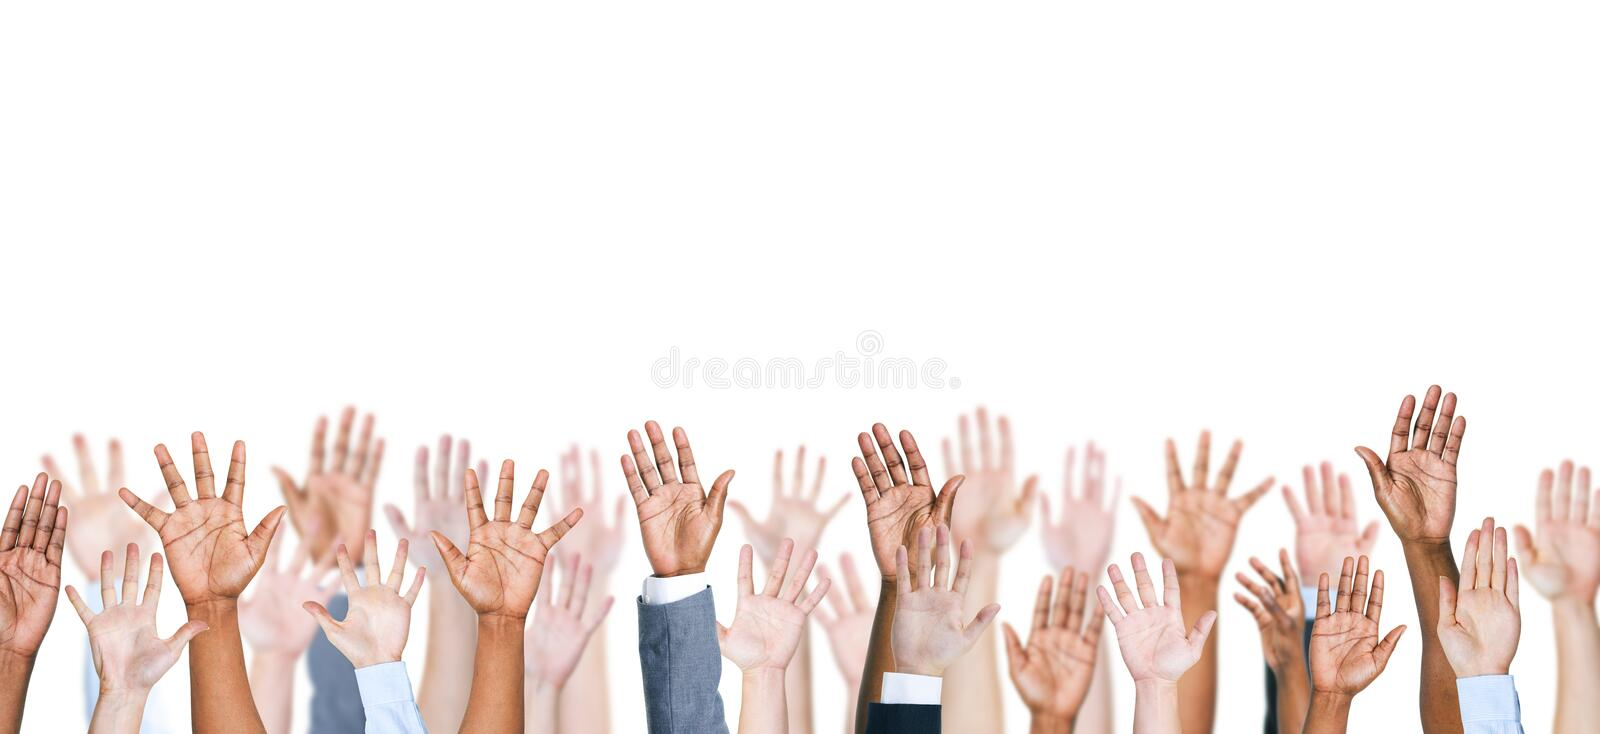 Group Of Multi-Ethnic People's Arm Outstretched In A White